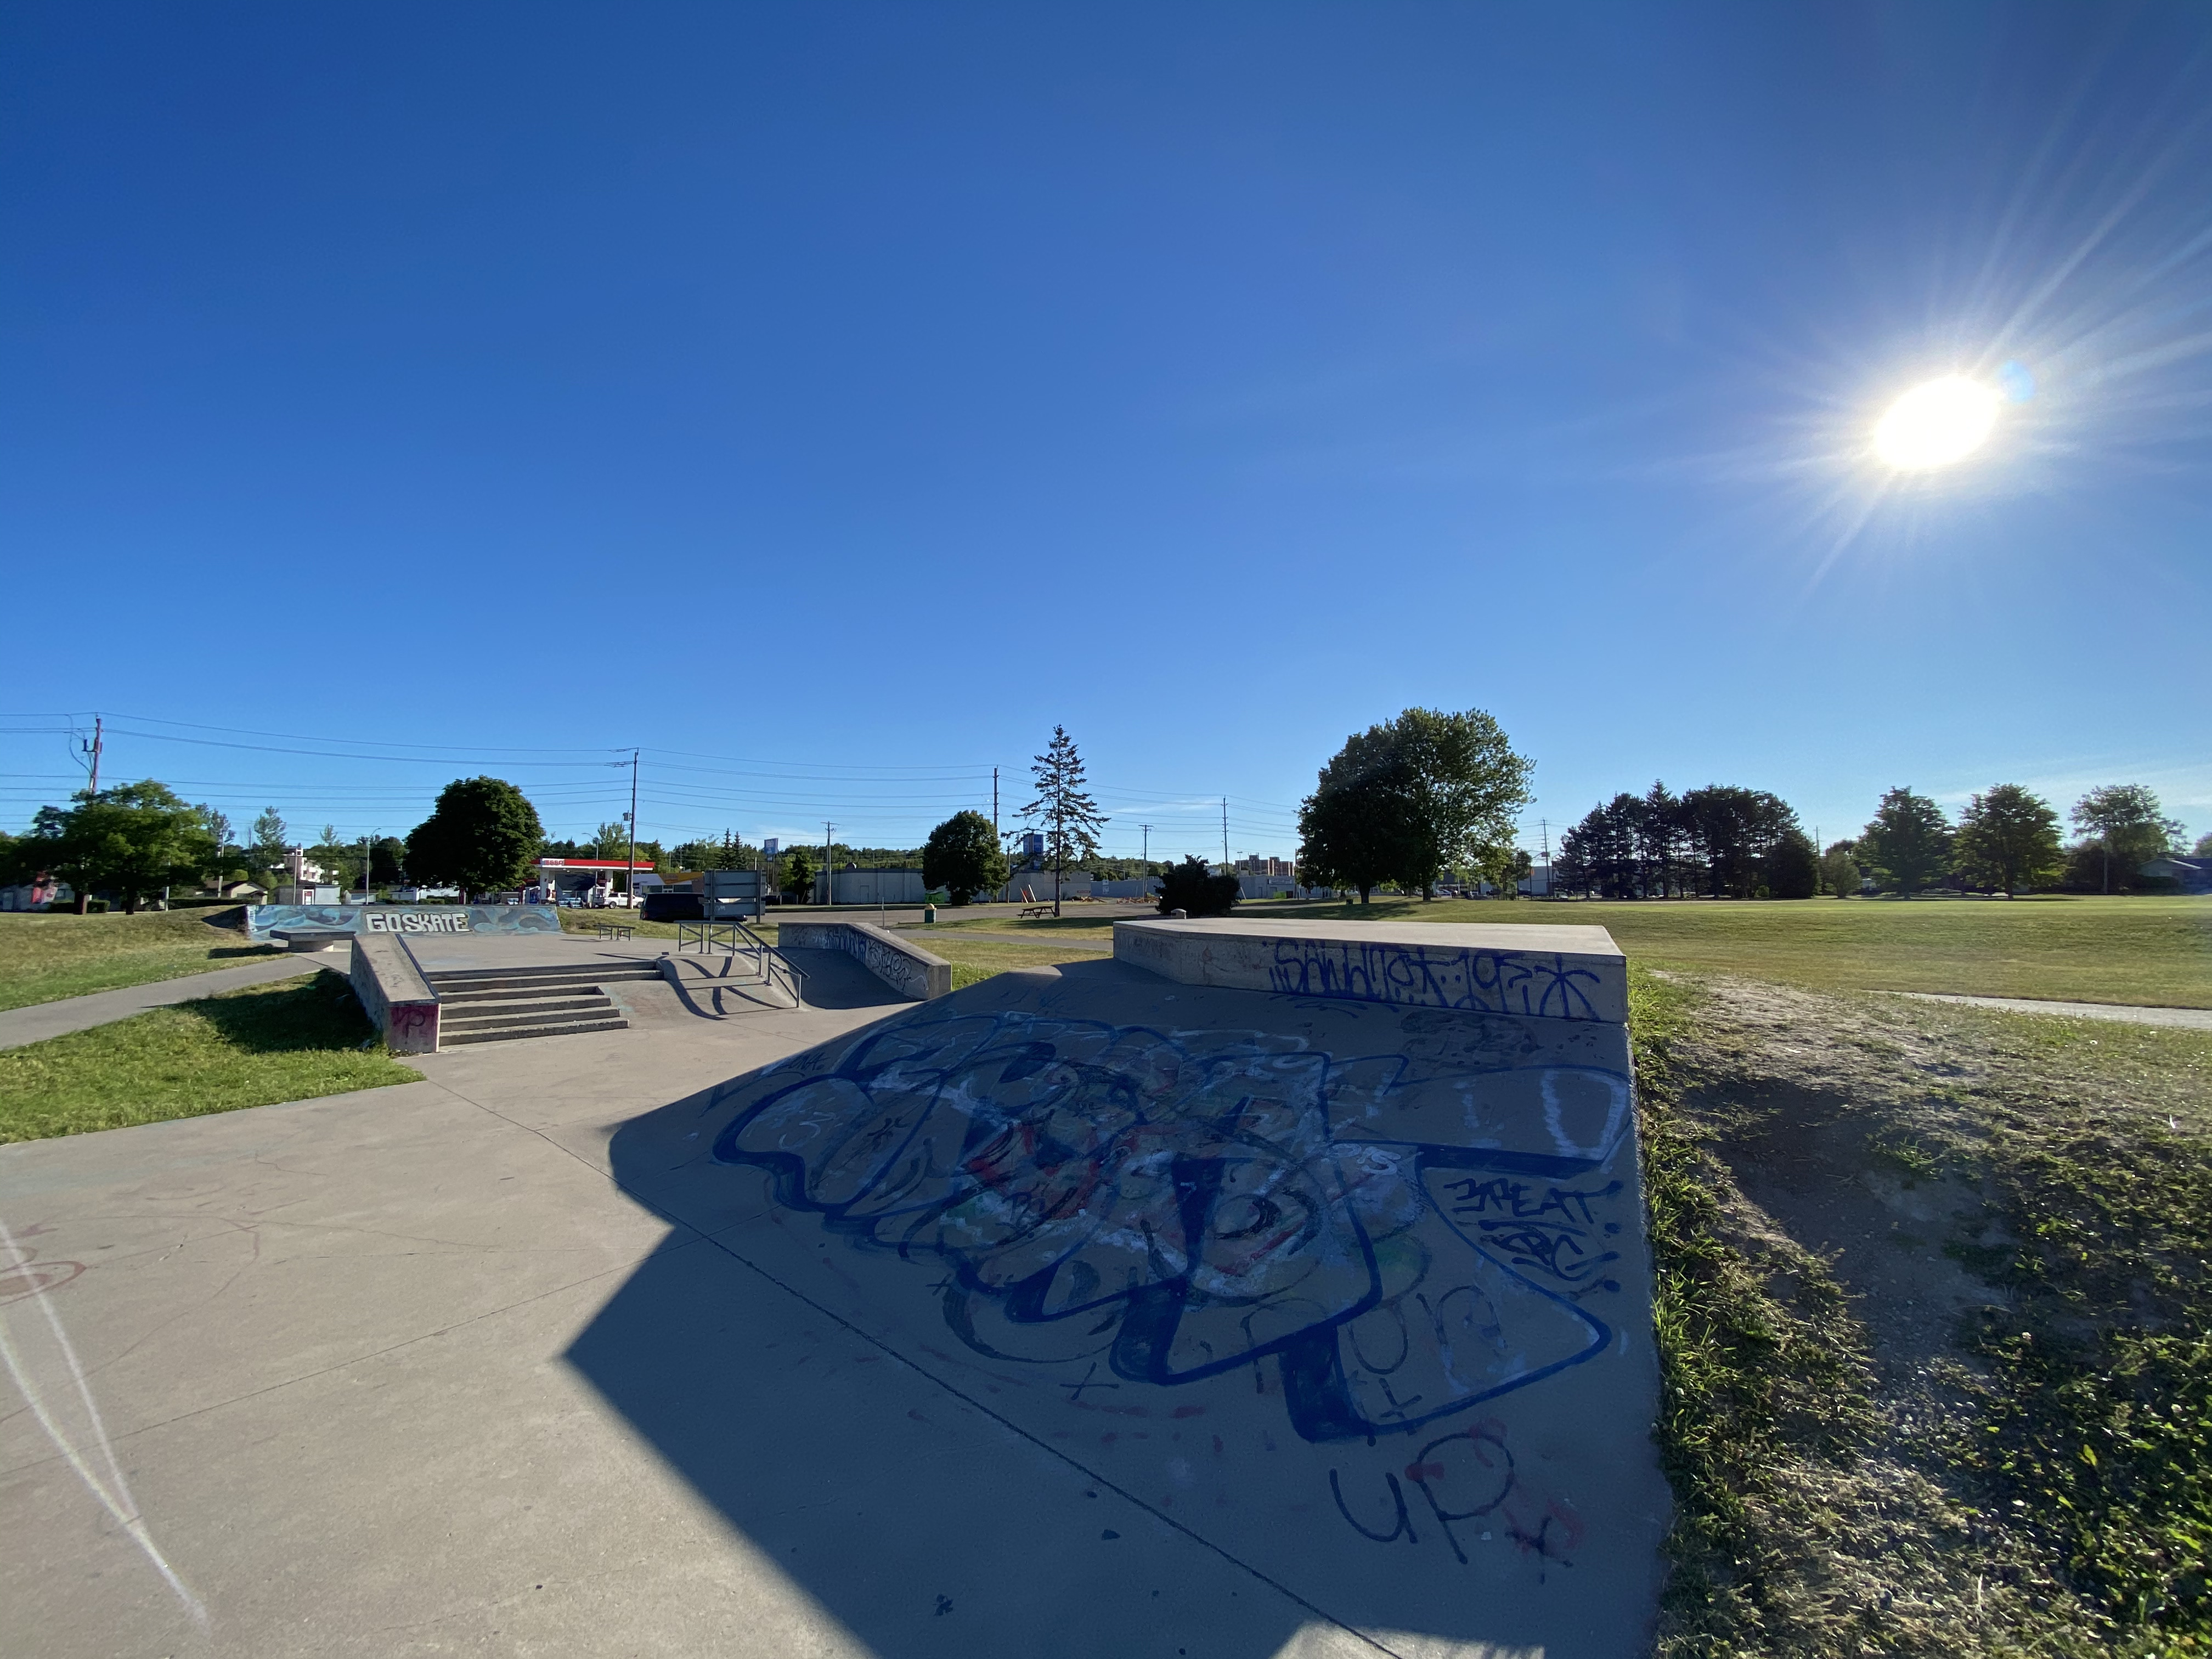 sault-ste marie skatepark facing the front of the park from the middle